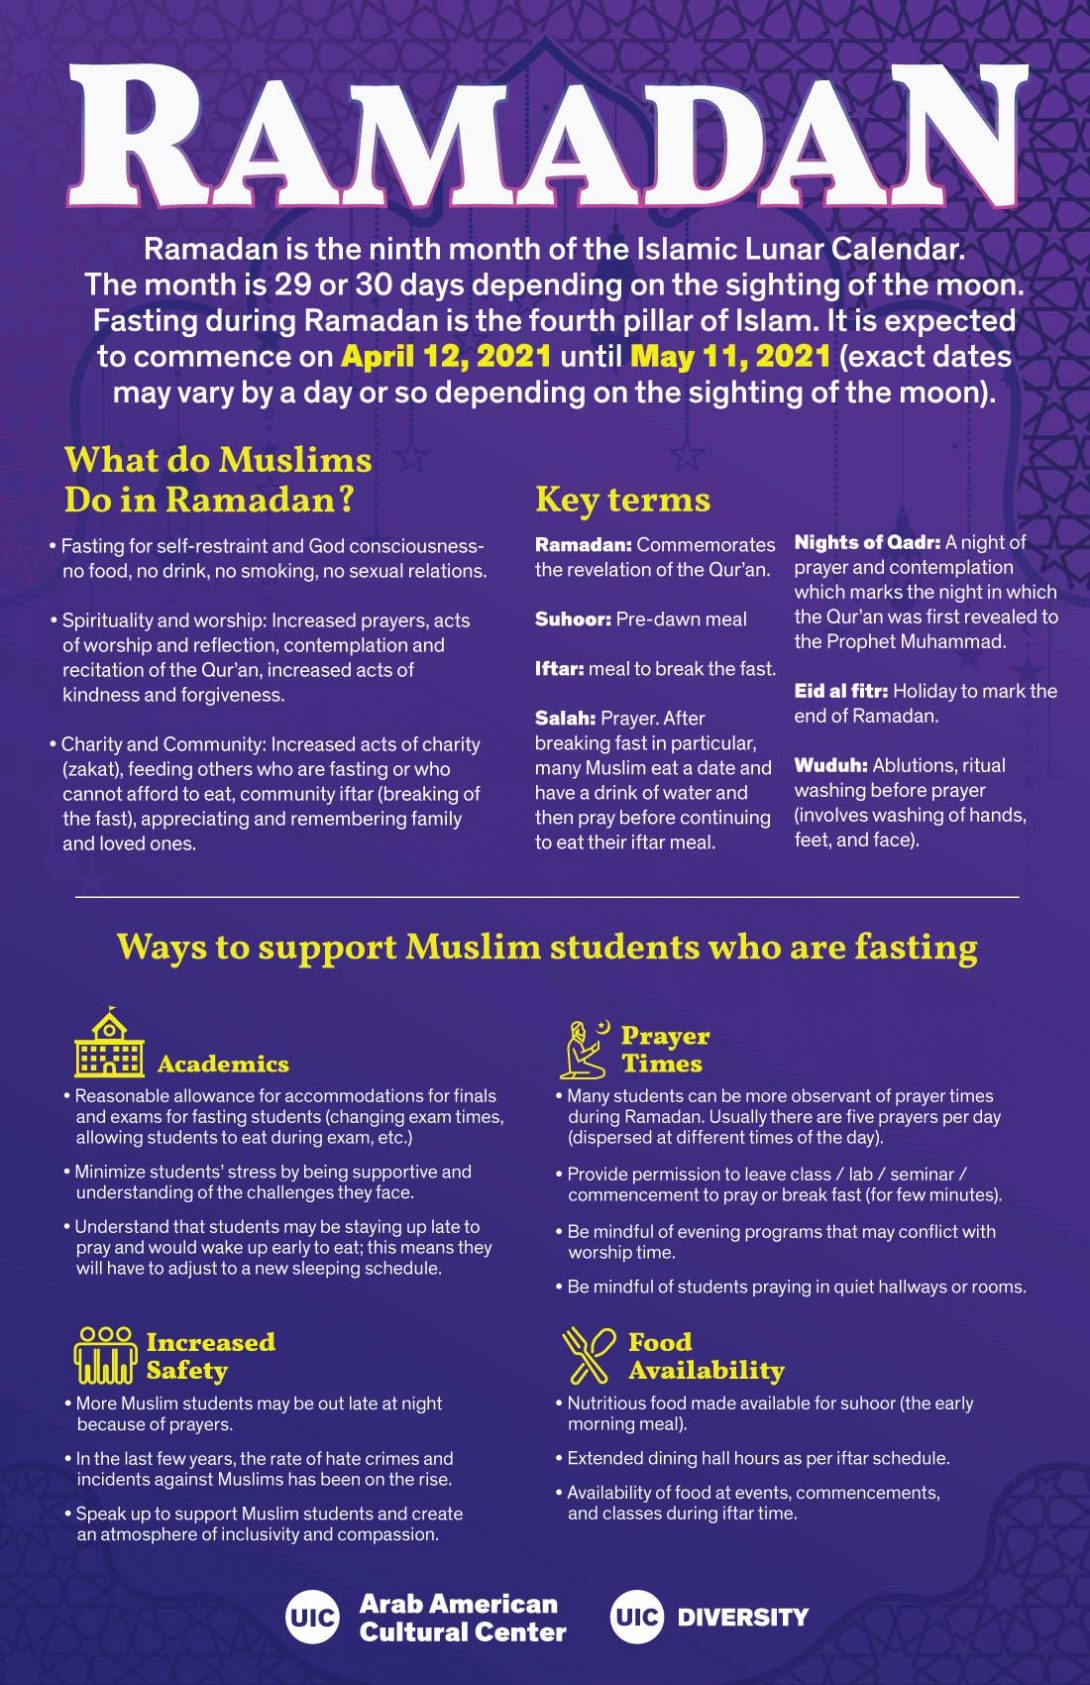 Flyer background is purple to blue with an imprint of geometric art. The top has the word Ramadan in large white font. The rest of the flyer has informaiton about Ramadan in white and yellow font.